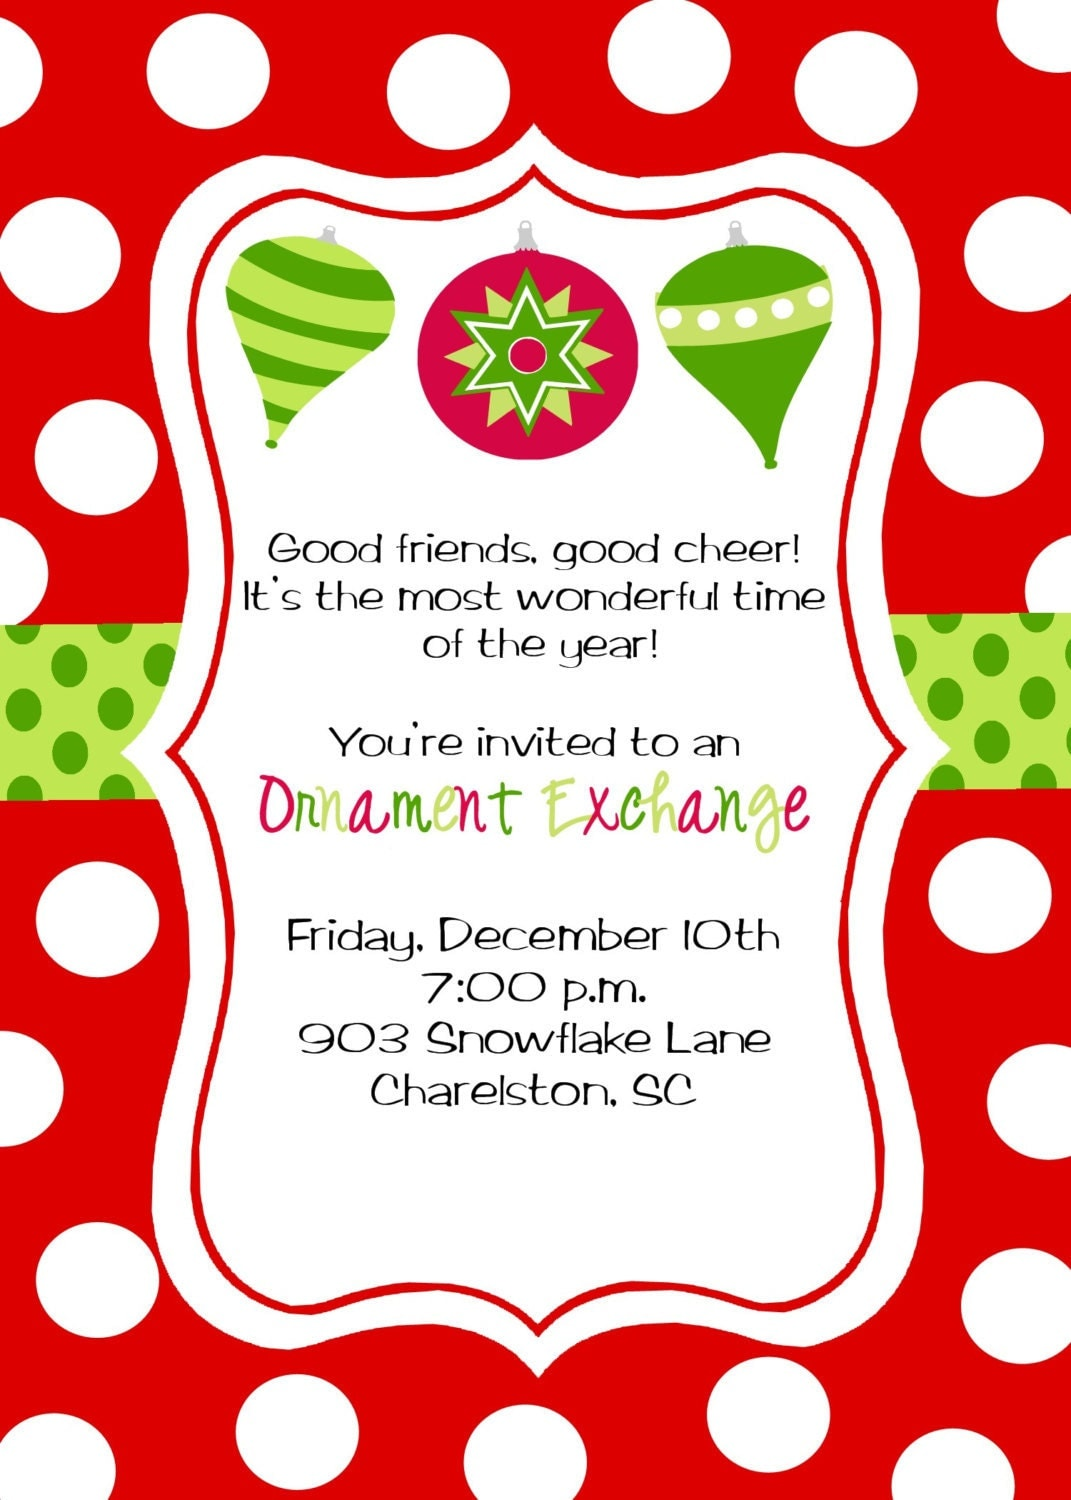 Christmas Party Invitations by stickerchic on Etsy: https://www.etsy.com/listing/86509412/christmas-party-invitations